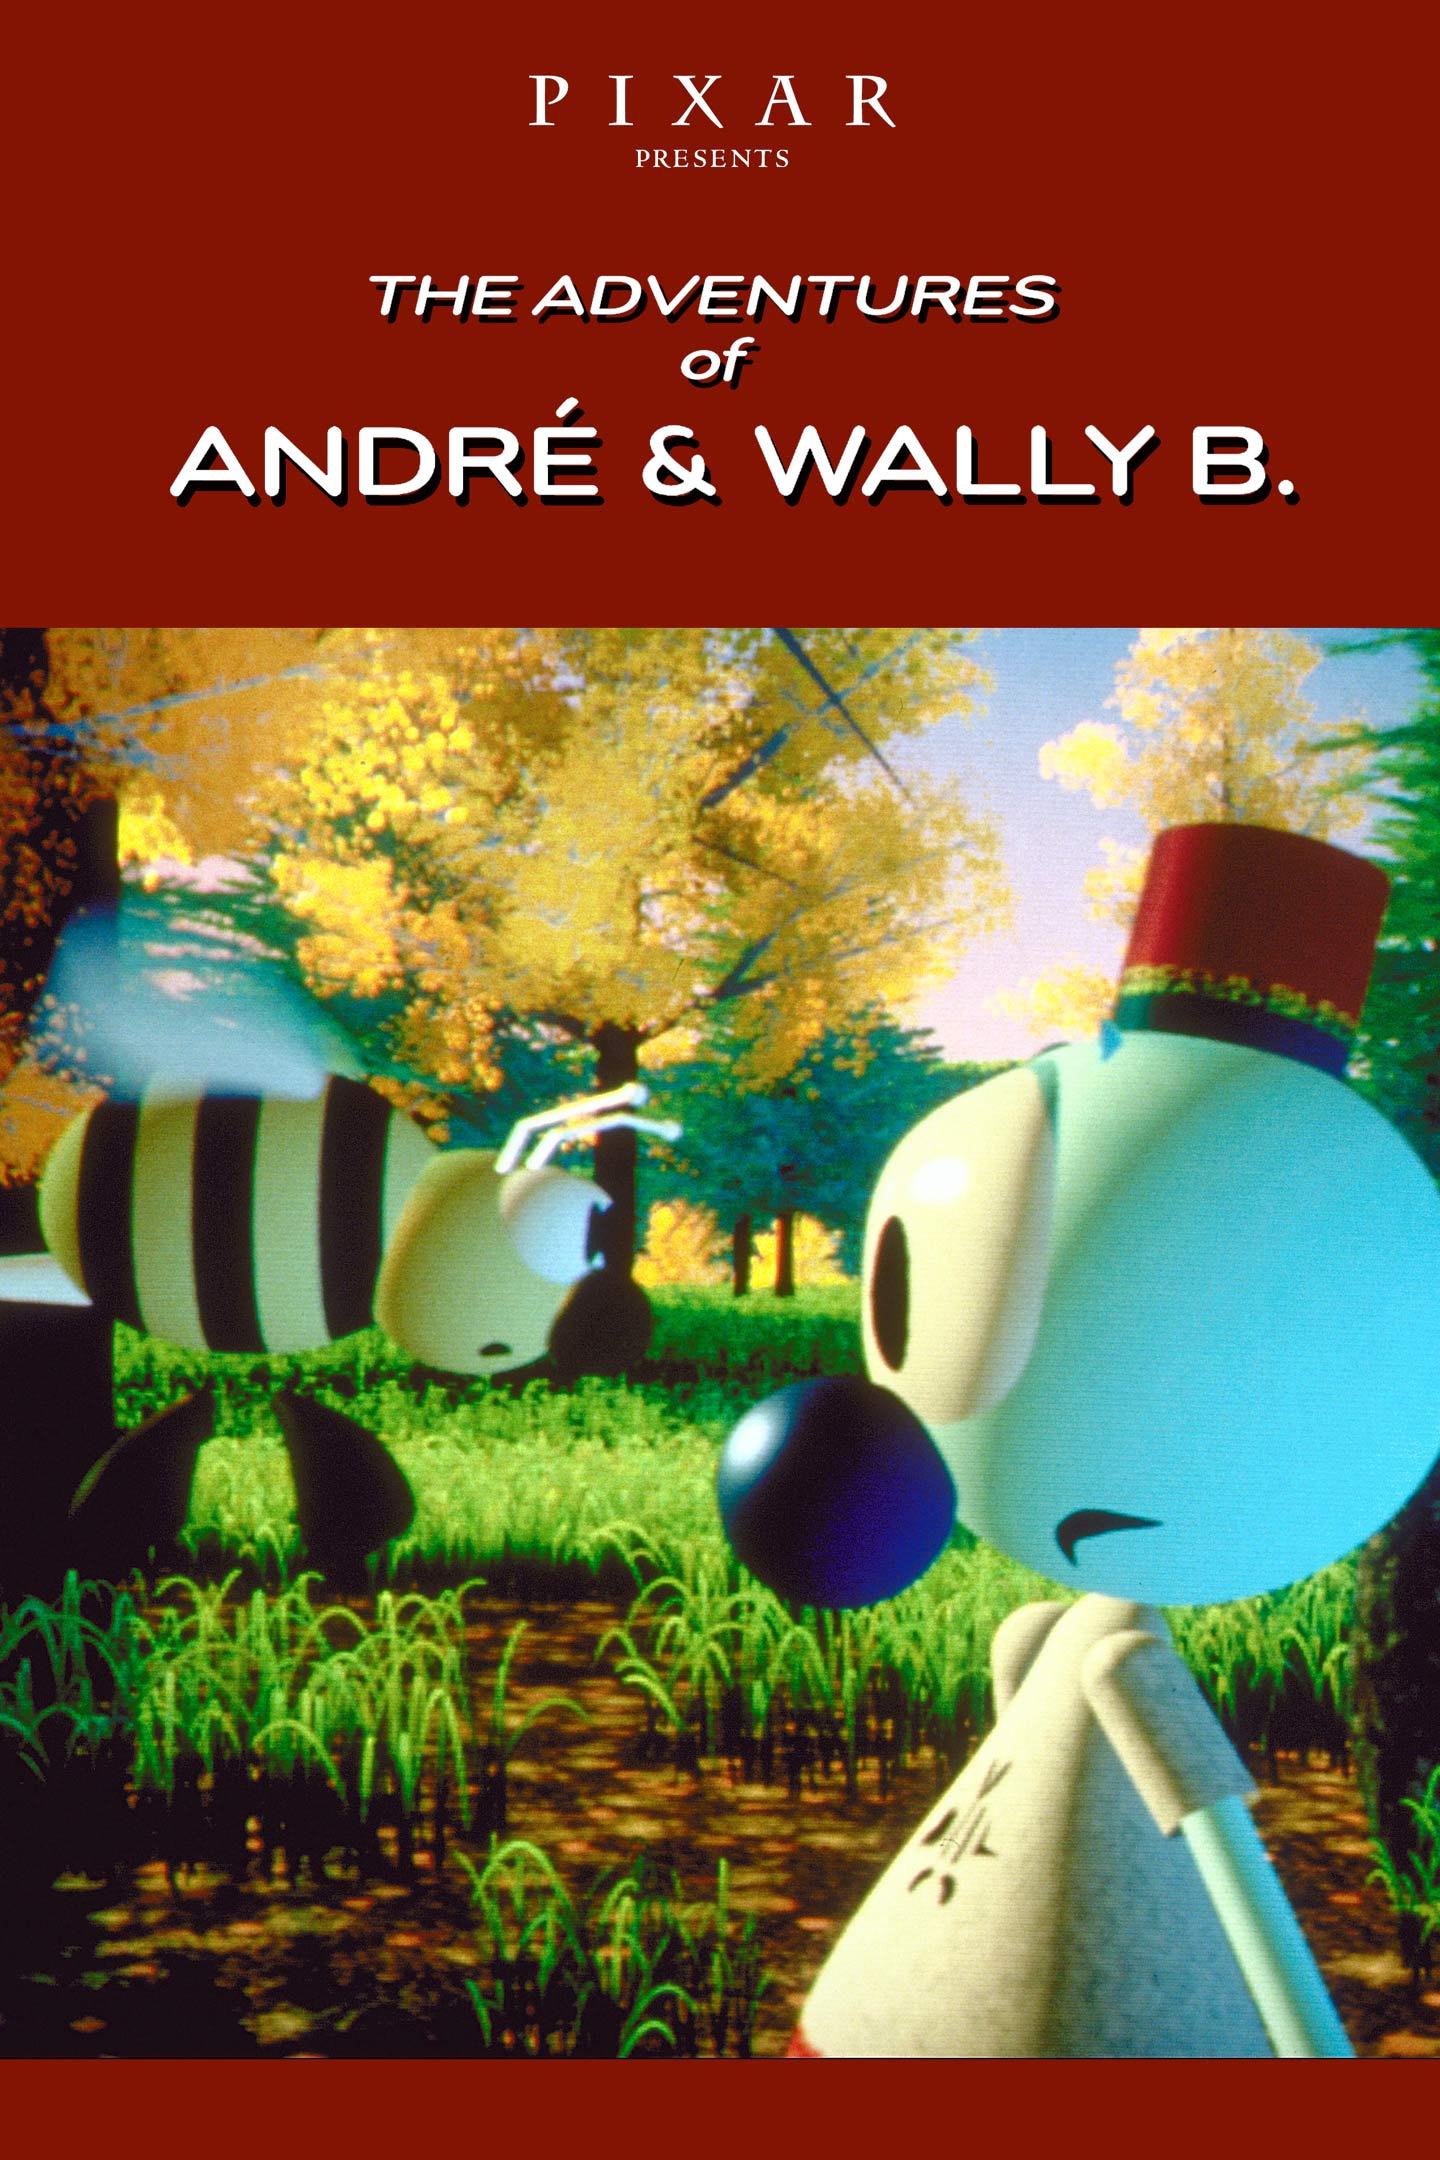 File:The Adventures of André and Wally B. poster.jpg